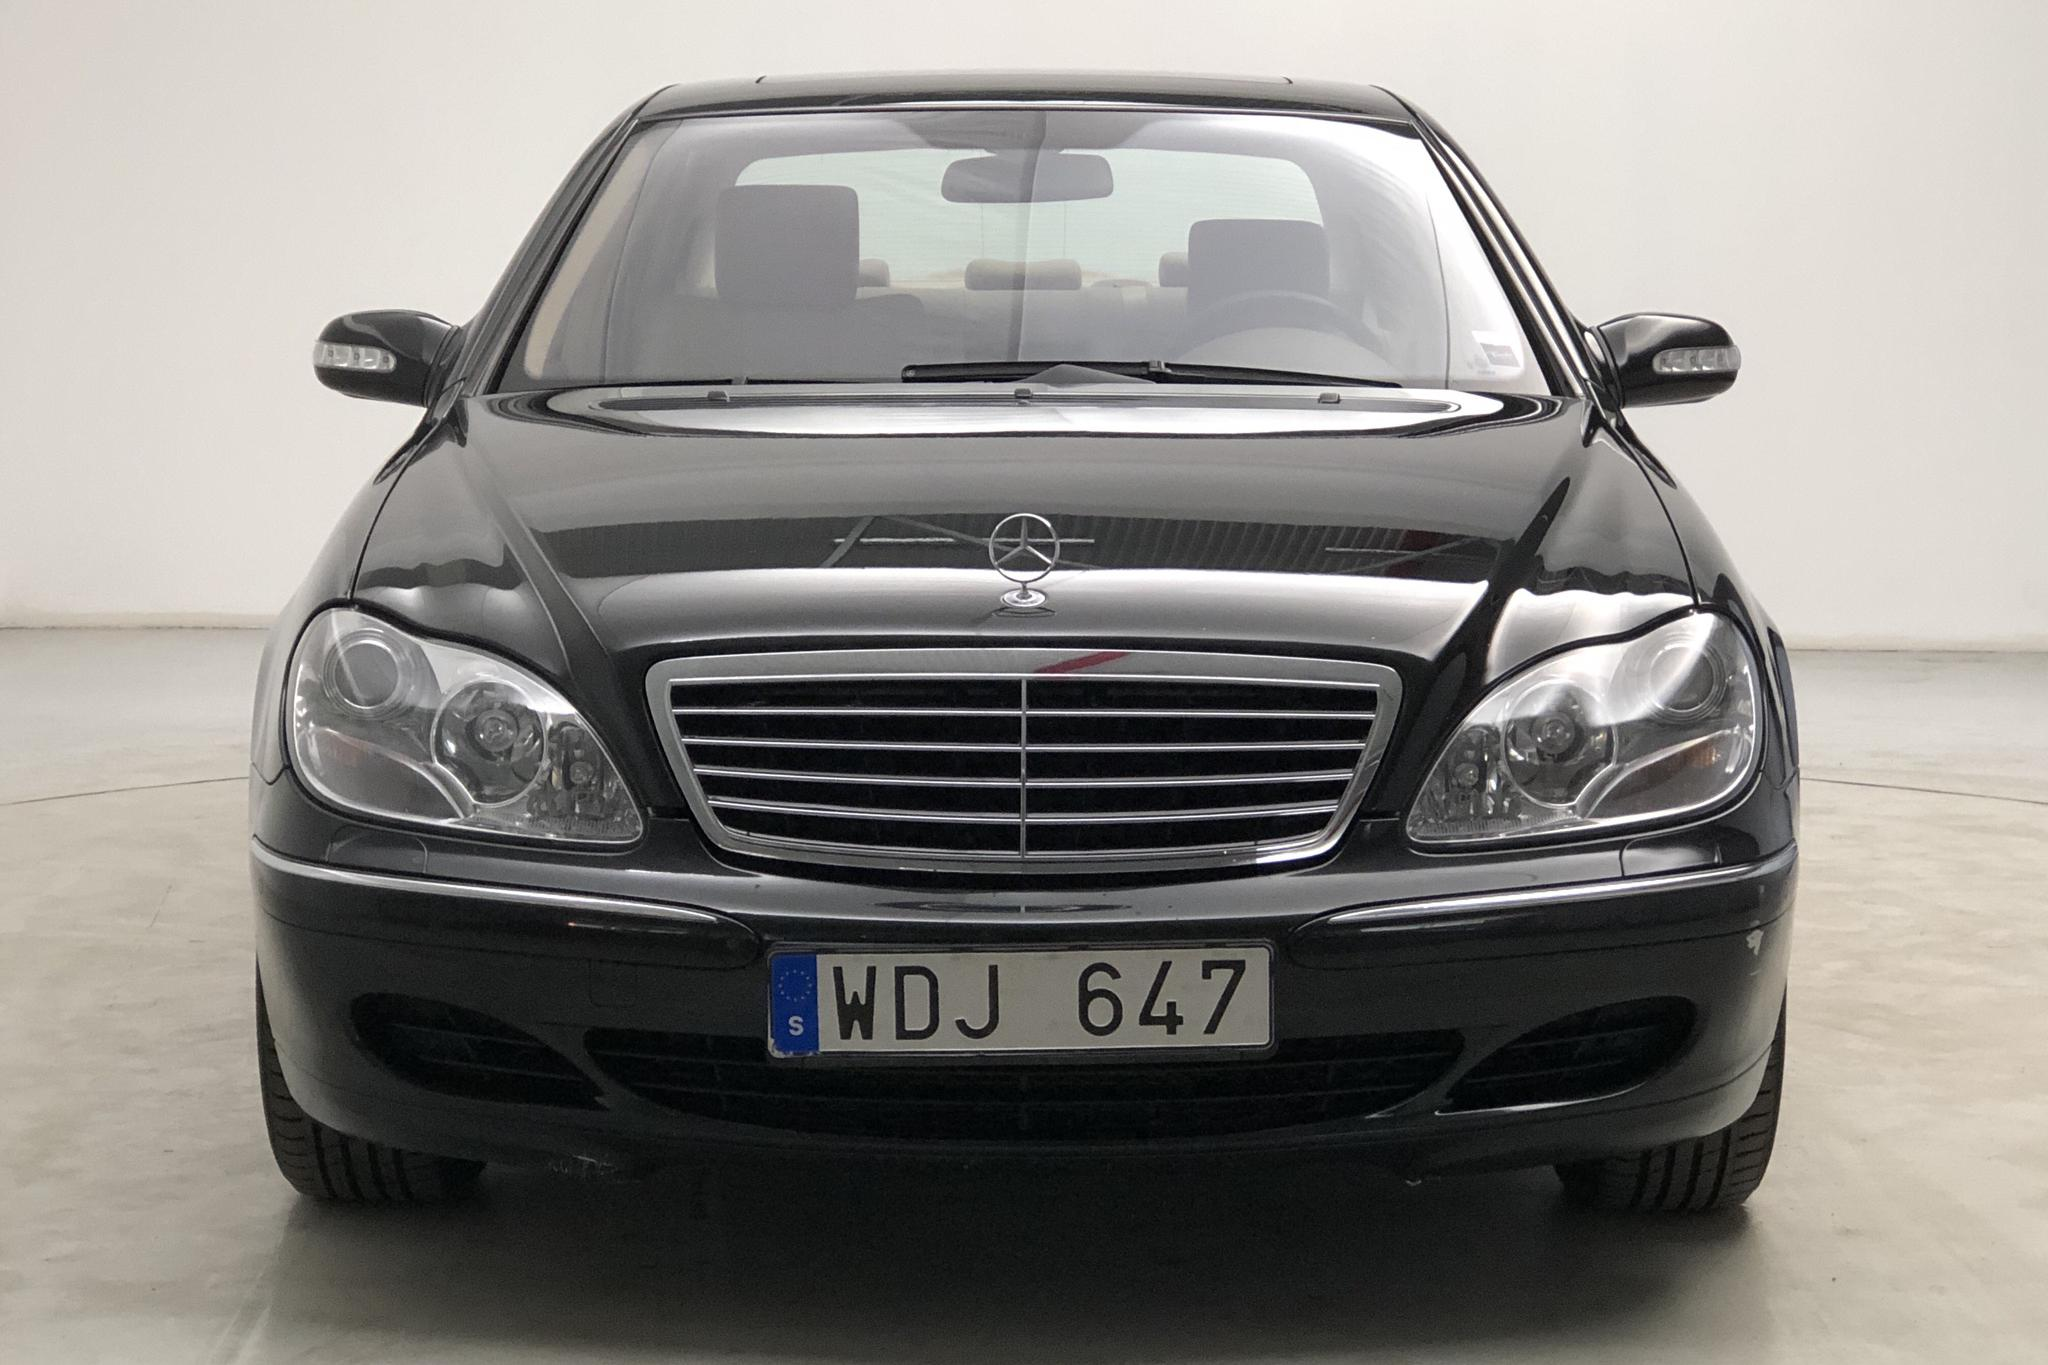 Mercedes S 500 W220 (306hk) - 120 350 km - Automatic - black - 2005